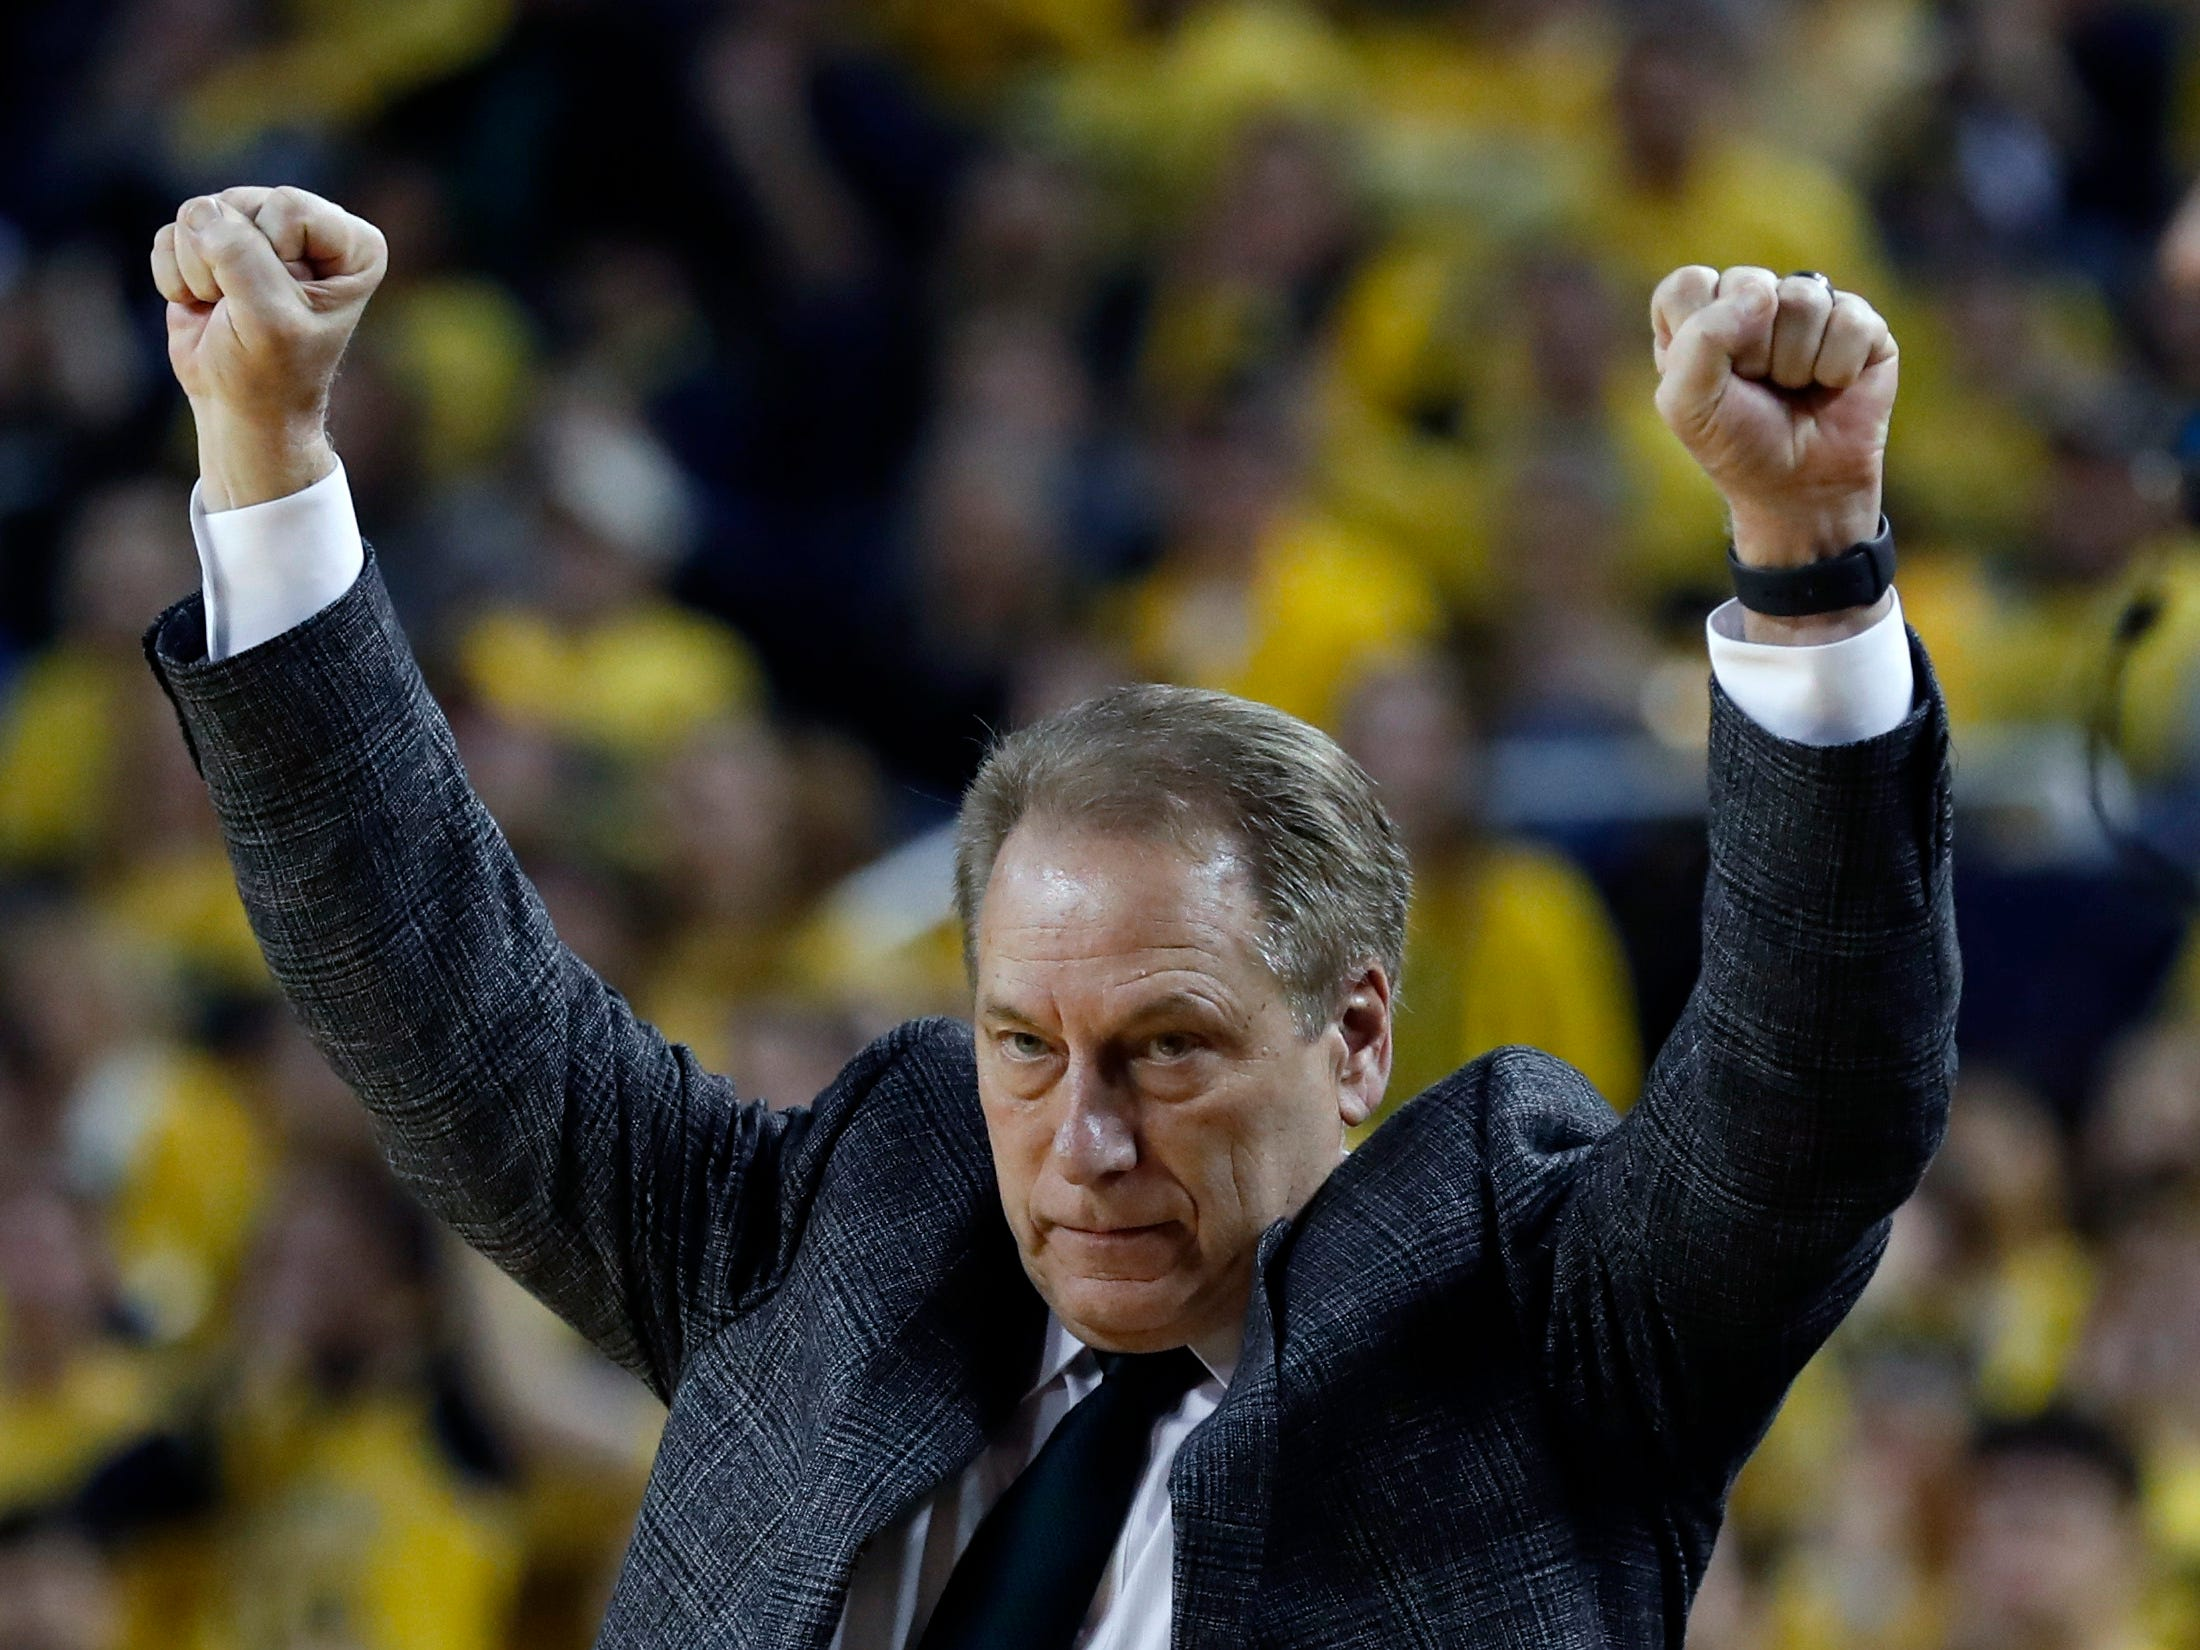 Michigan State head coach Tom Izzo reacts during the second half of an NCAA college basketball game against Michigan, Sunday, Feb. 24, 2019, in Ann Arbor, Mich.